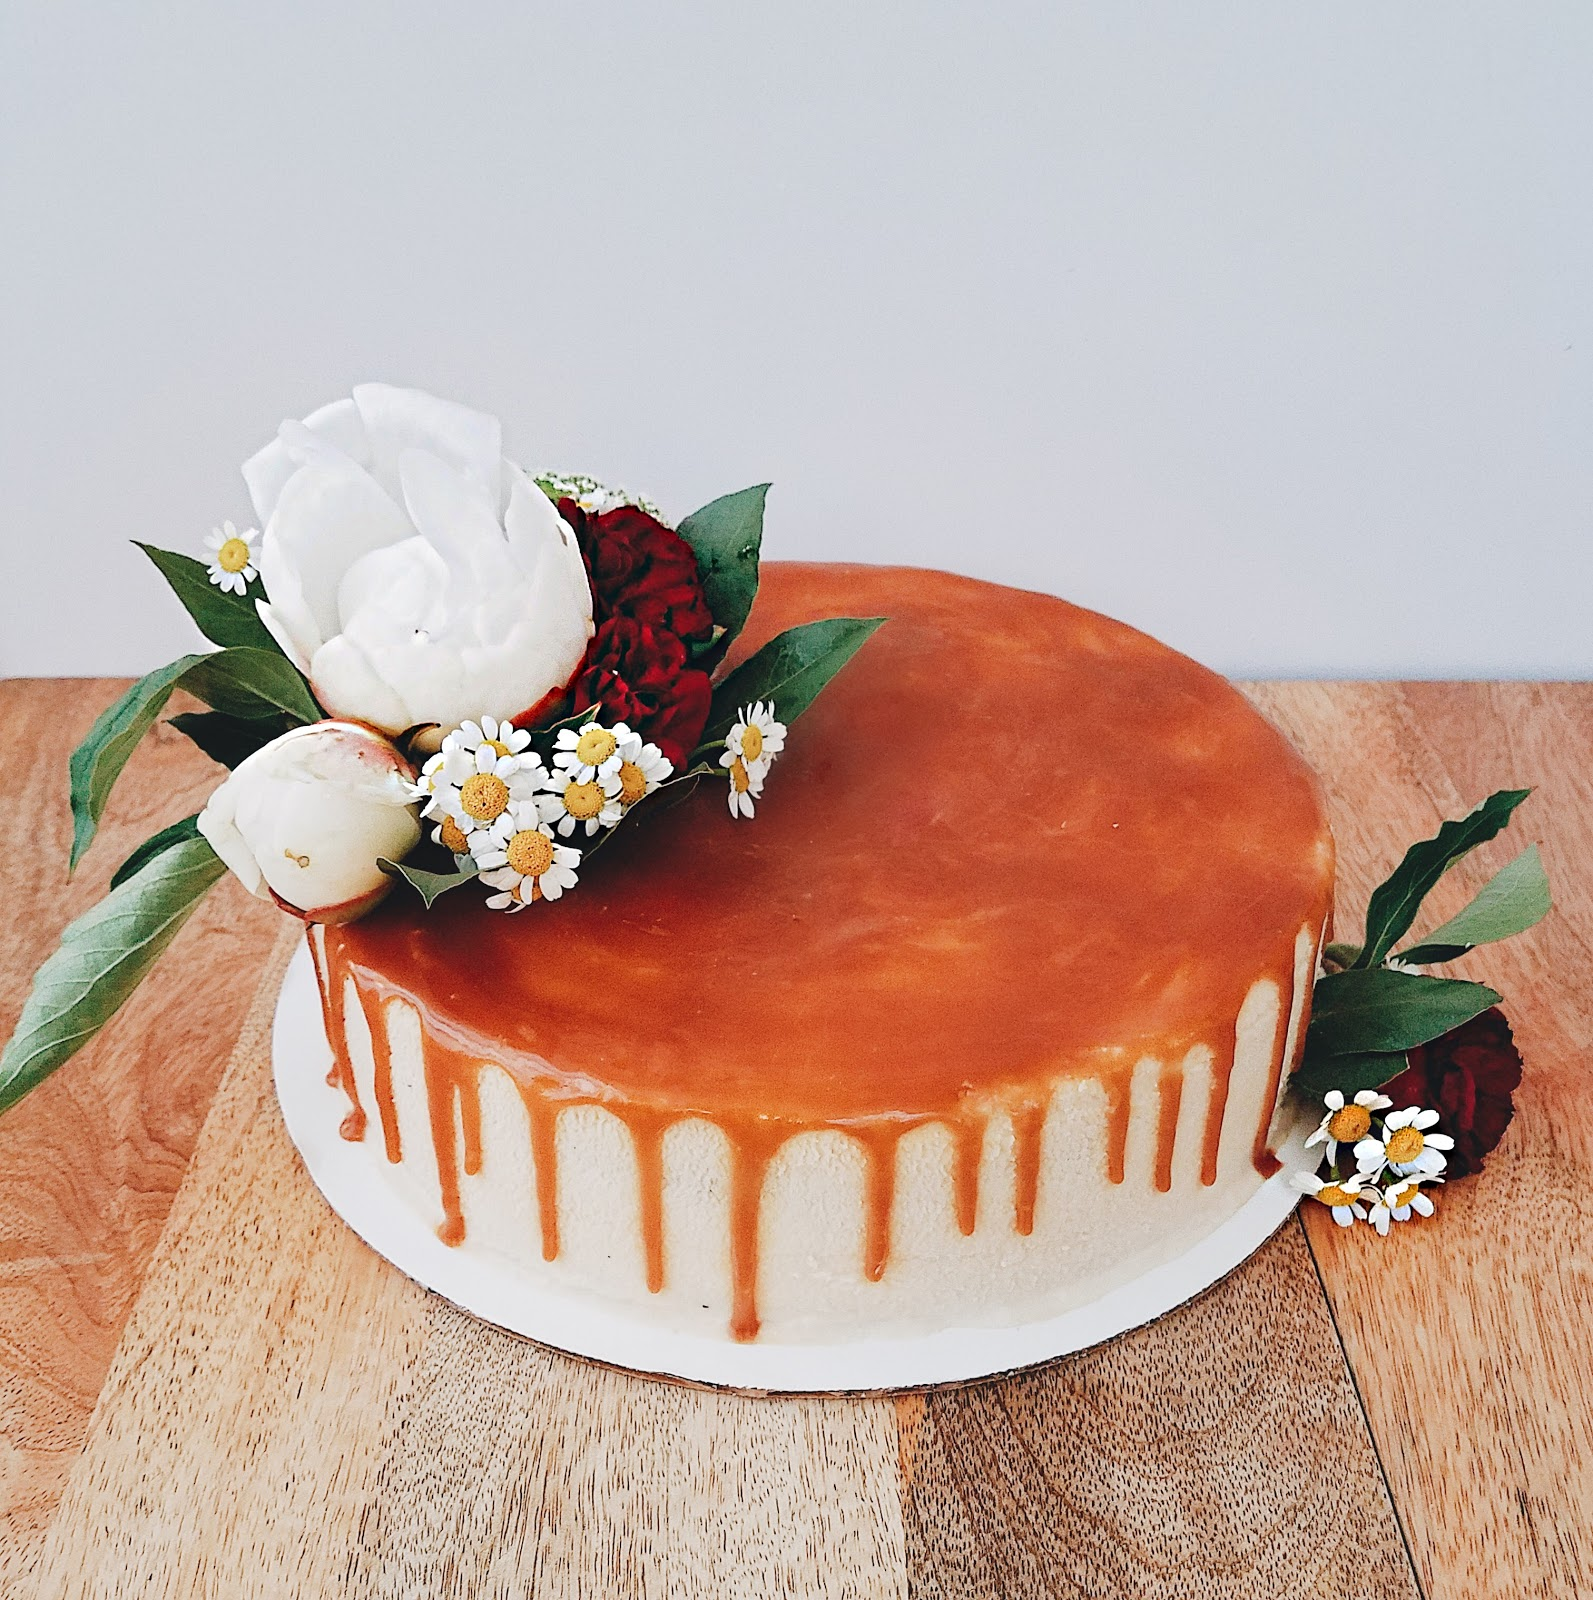 earl grey cheesecake with salty dark caramel topping, decorated with white peonies, red carnations, chamomile flowers, and green mist